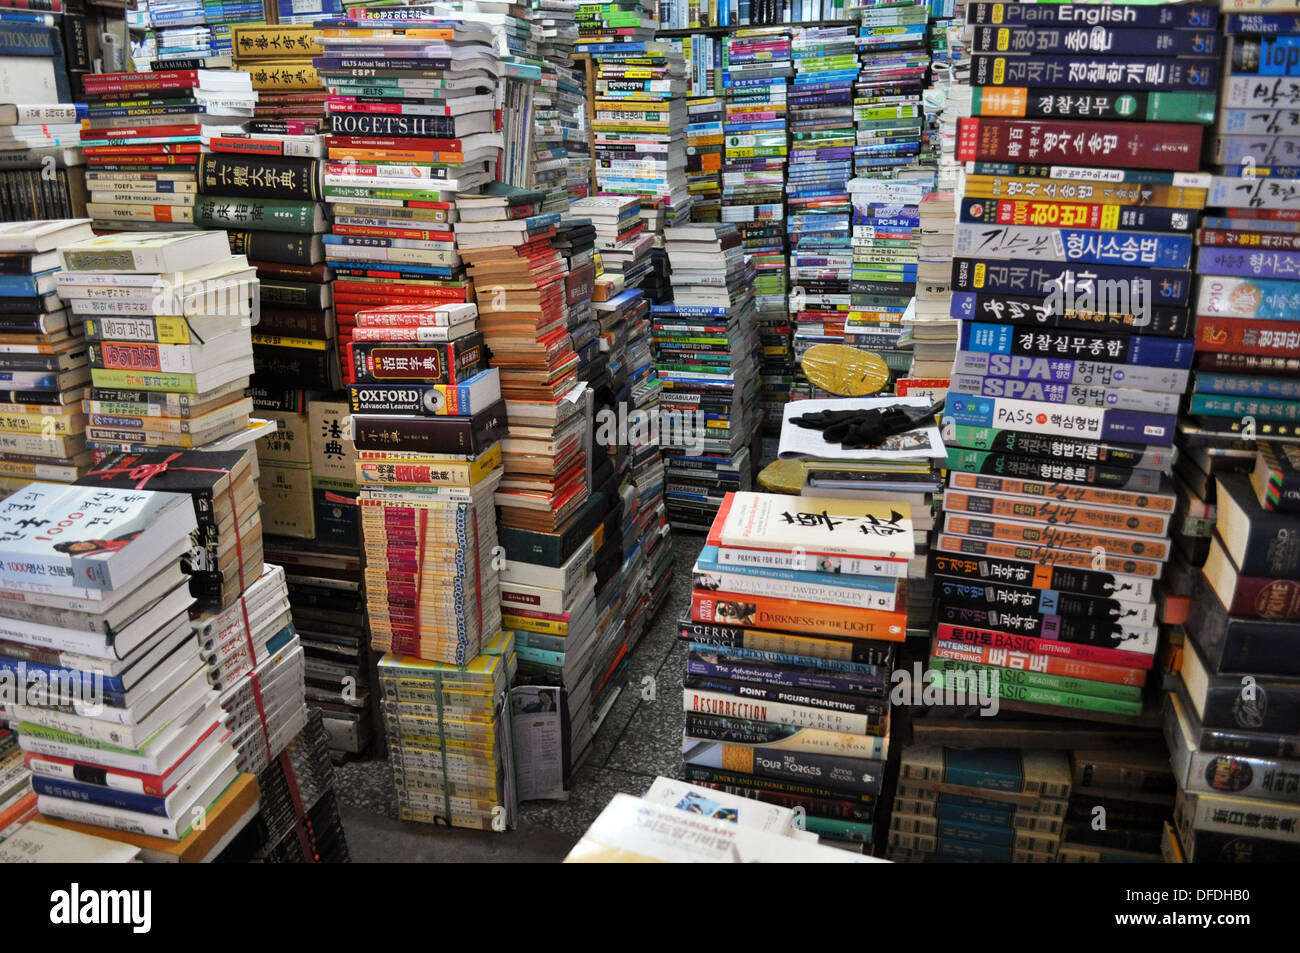 Busan (South Korea): books sold at the Bosu-dong Bookstore